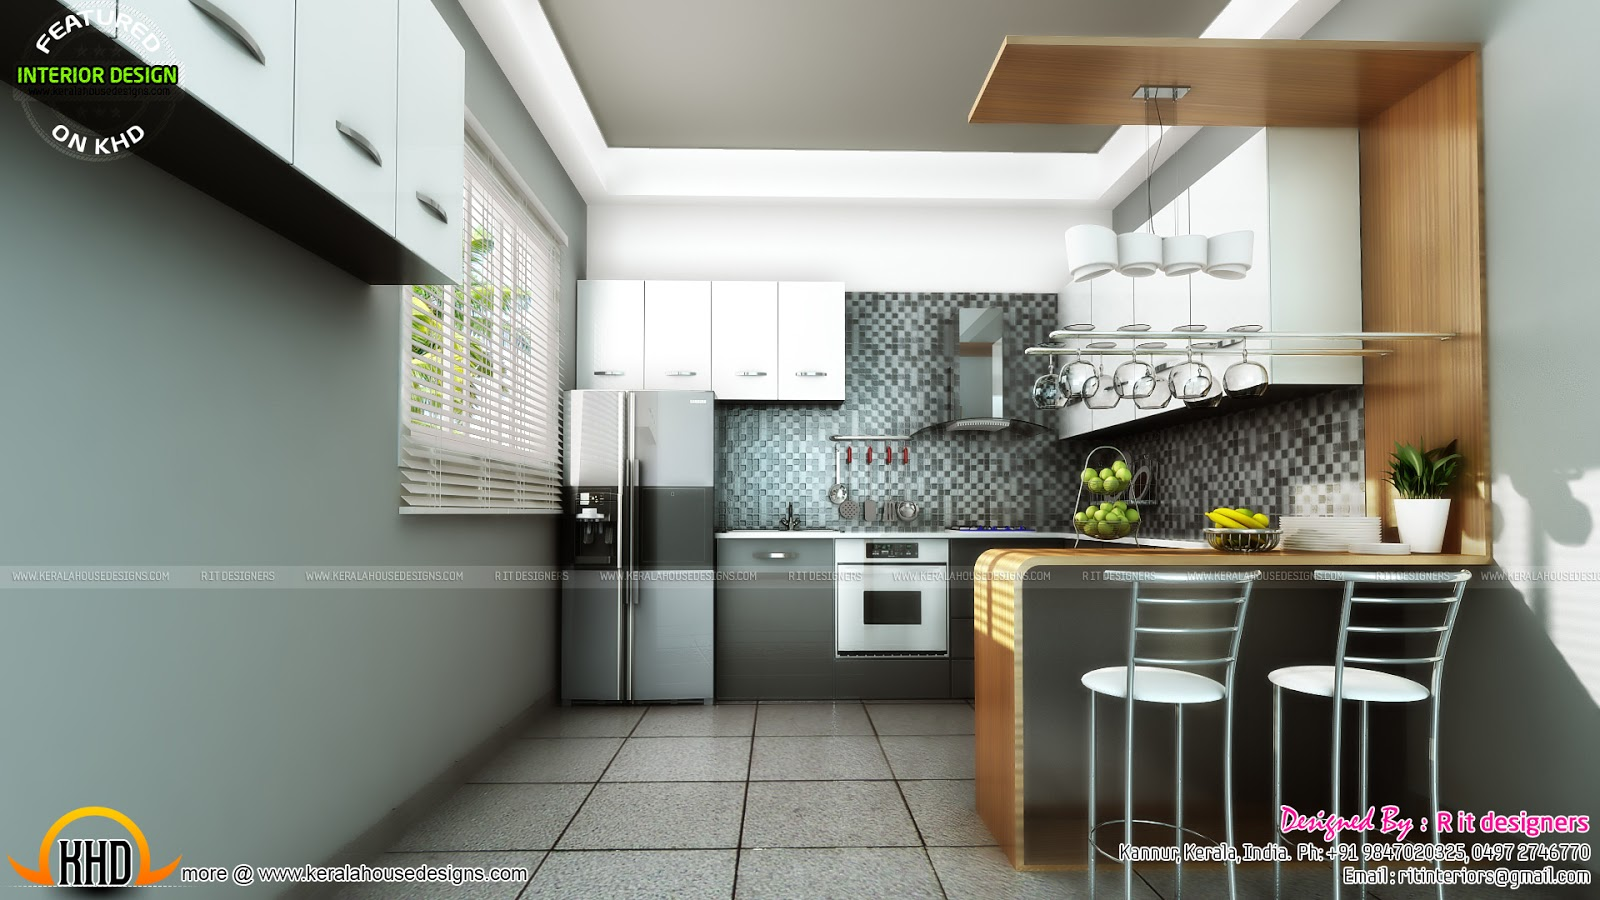 Study room modern kitchen living interior kerala home for Modern kitchen designs in kerala